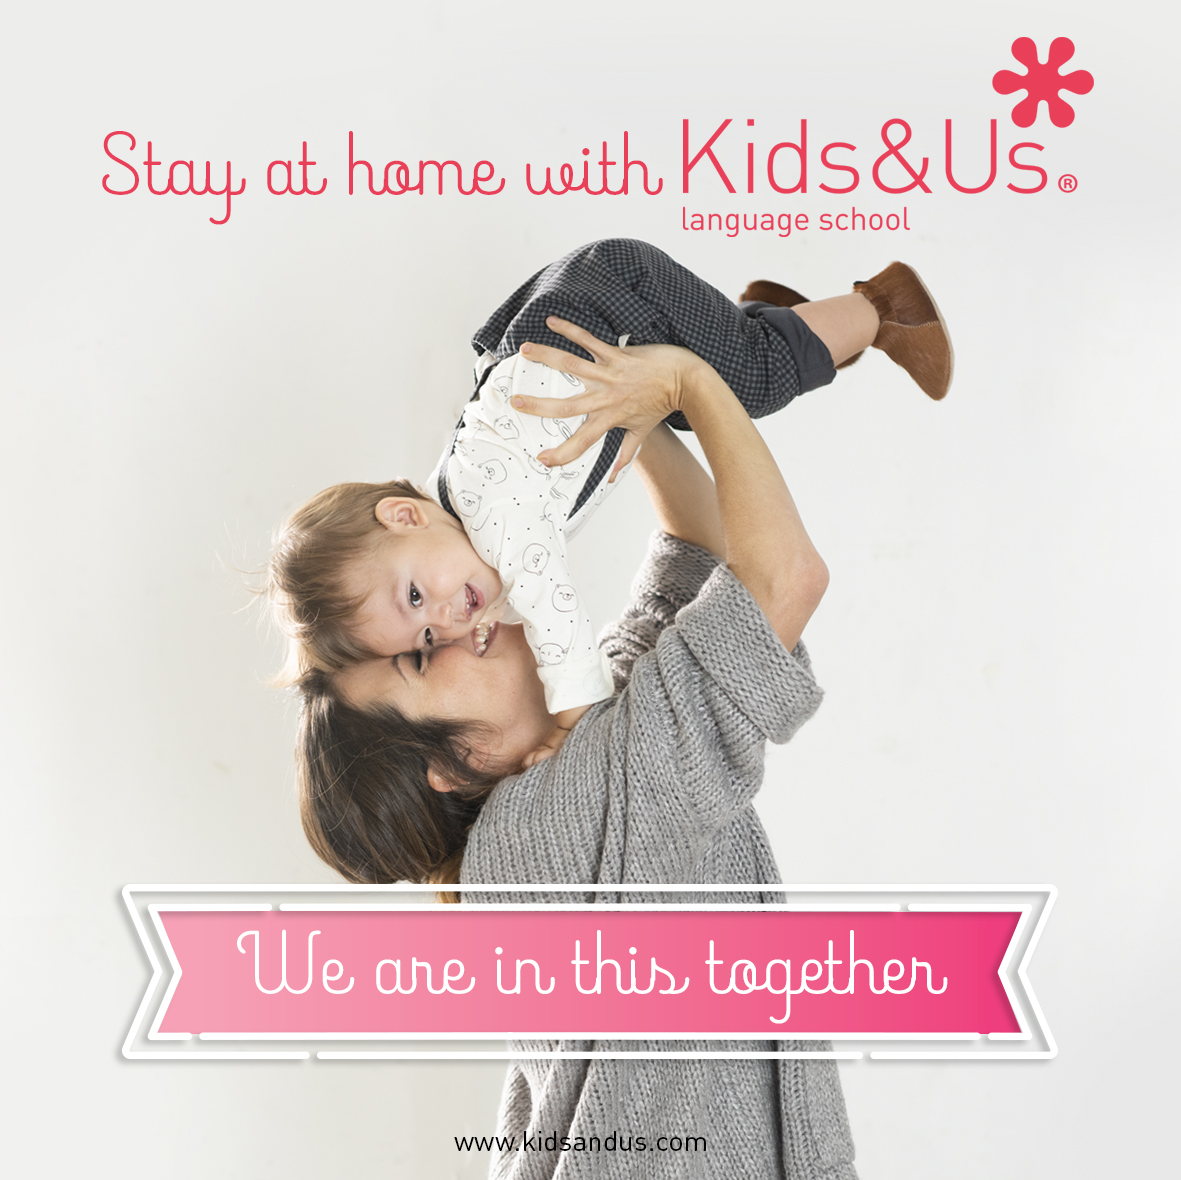 Stay at home with Kids&Us!